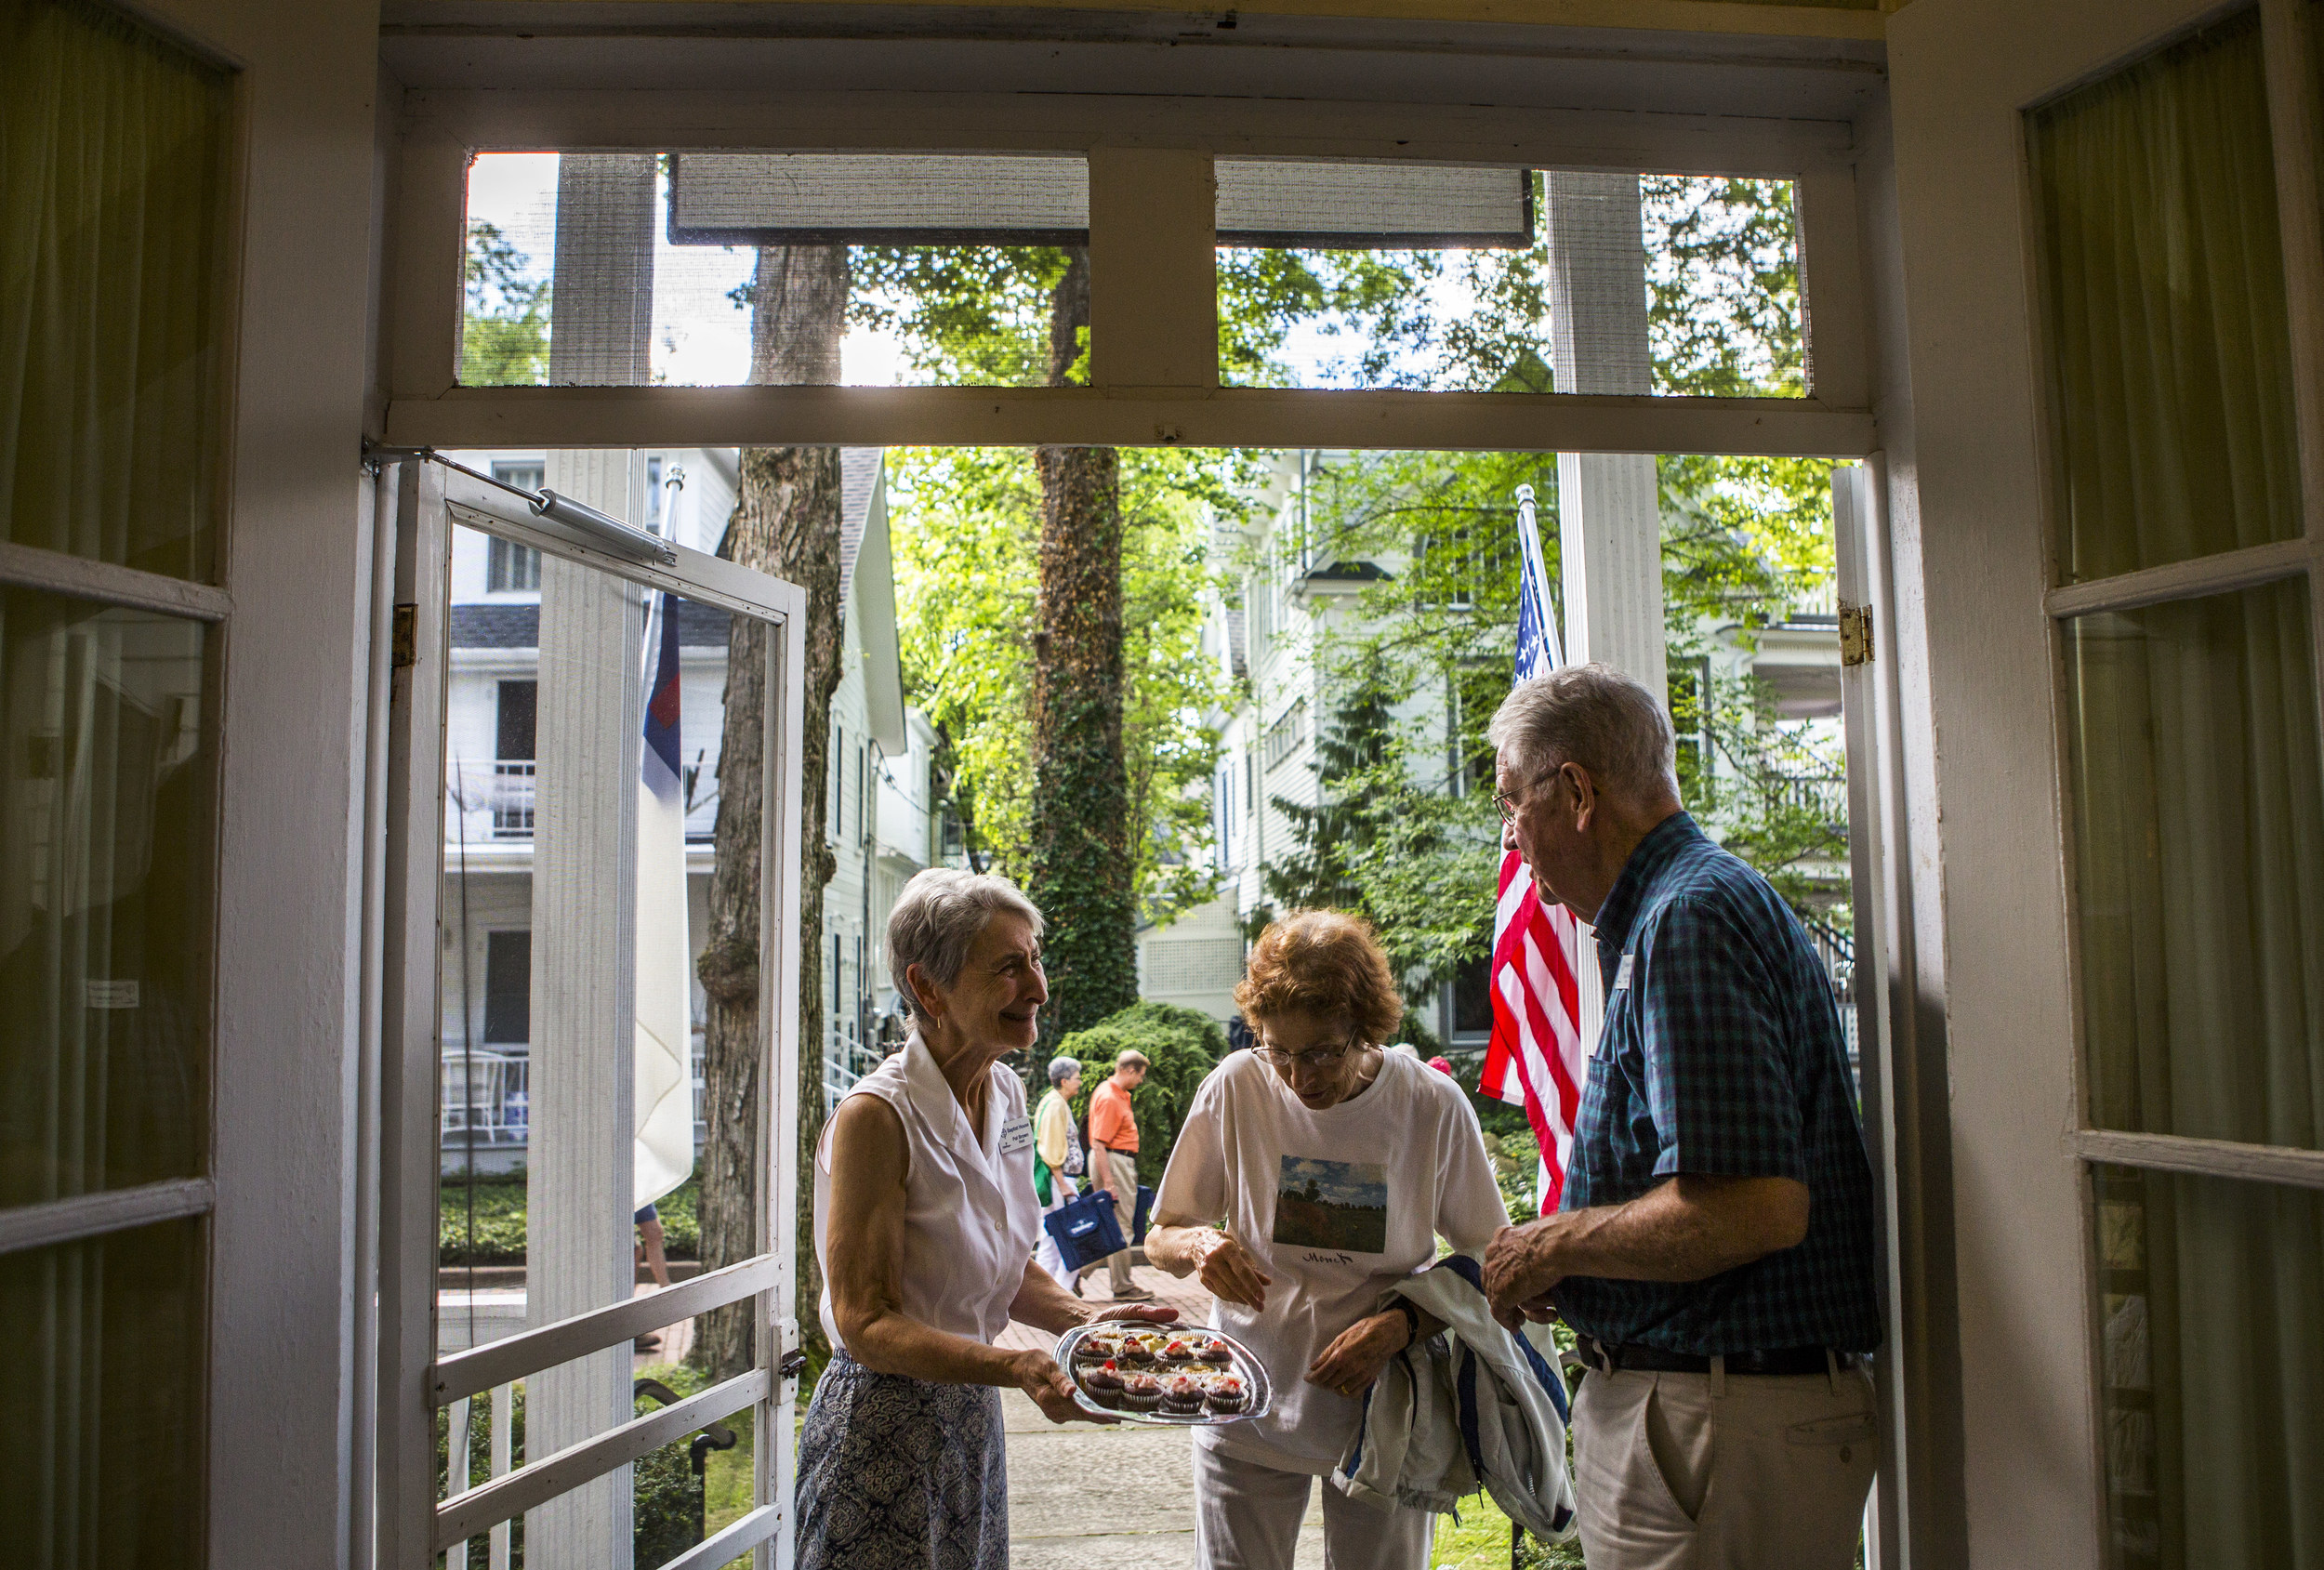 Bud and Pat Brown have been the hosts of the Baptist House in Chautauqua Institution for the past nine years. They have been staying in the Baptist House every since they started coming to Chautauqua in 1977.